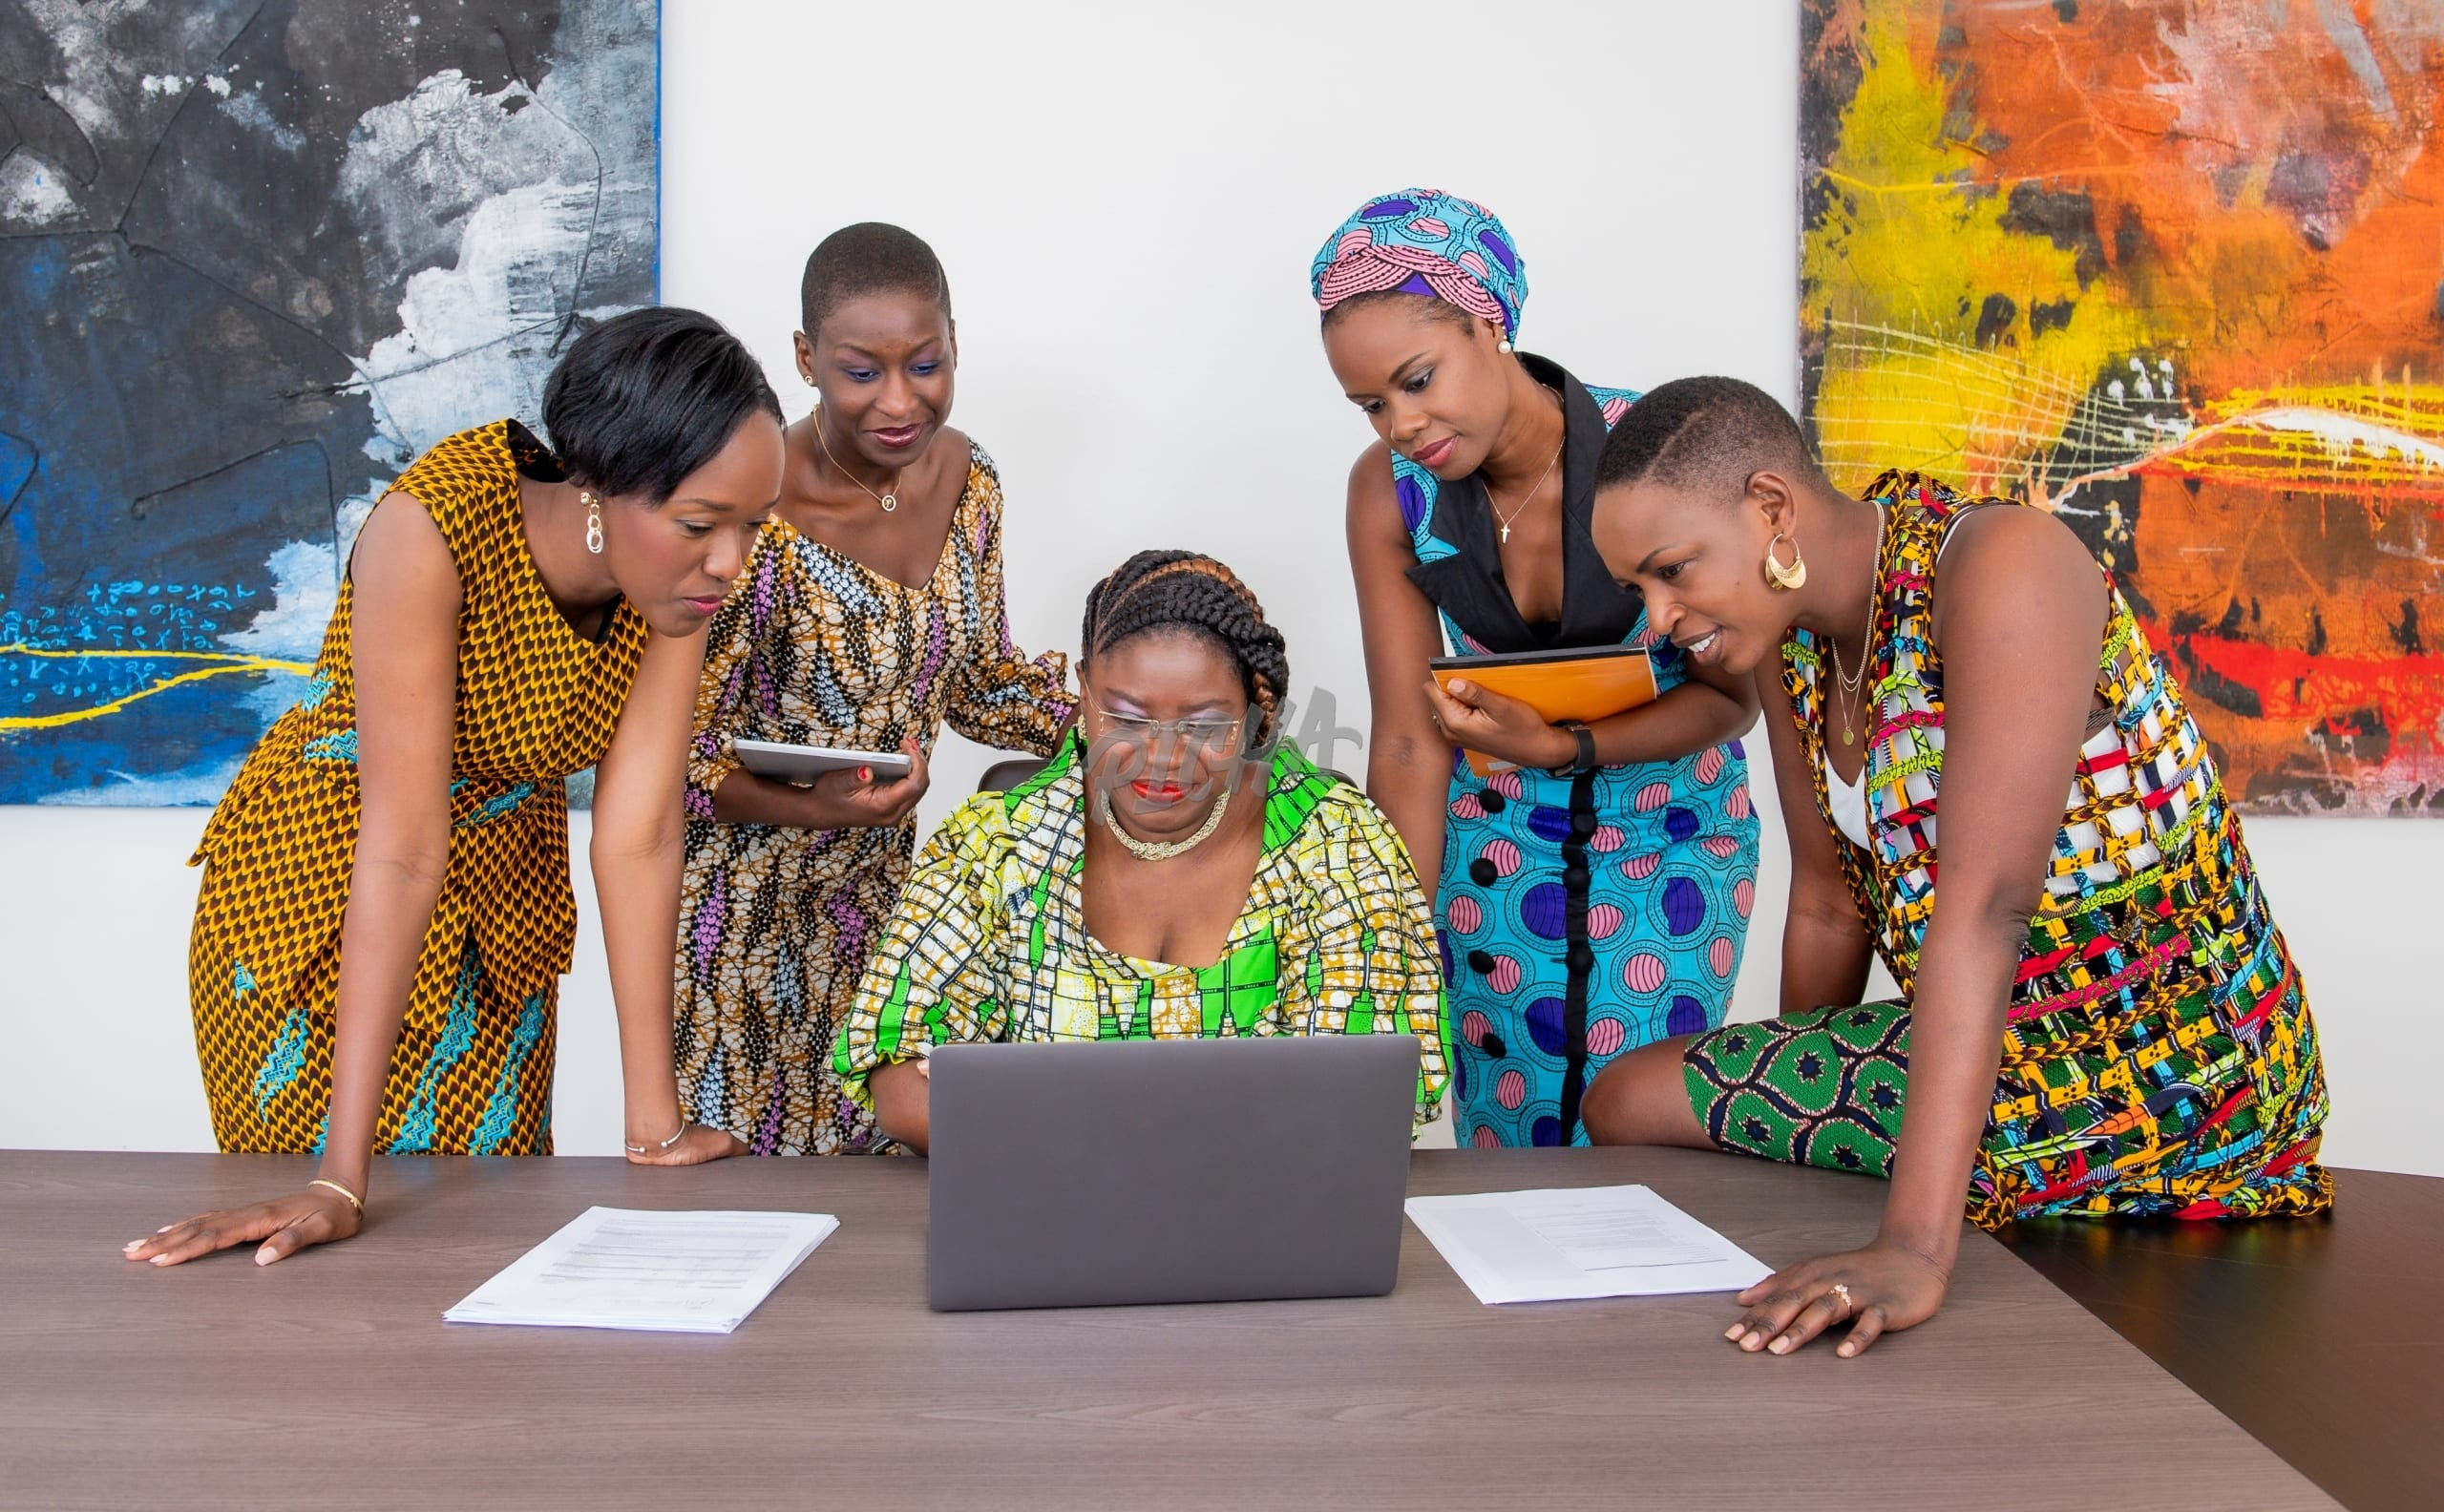 A group of woman working together